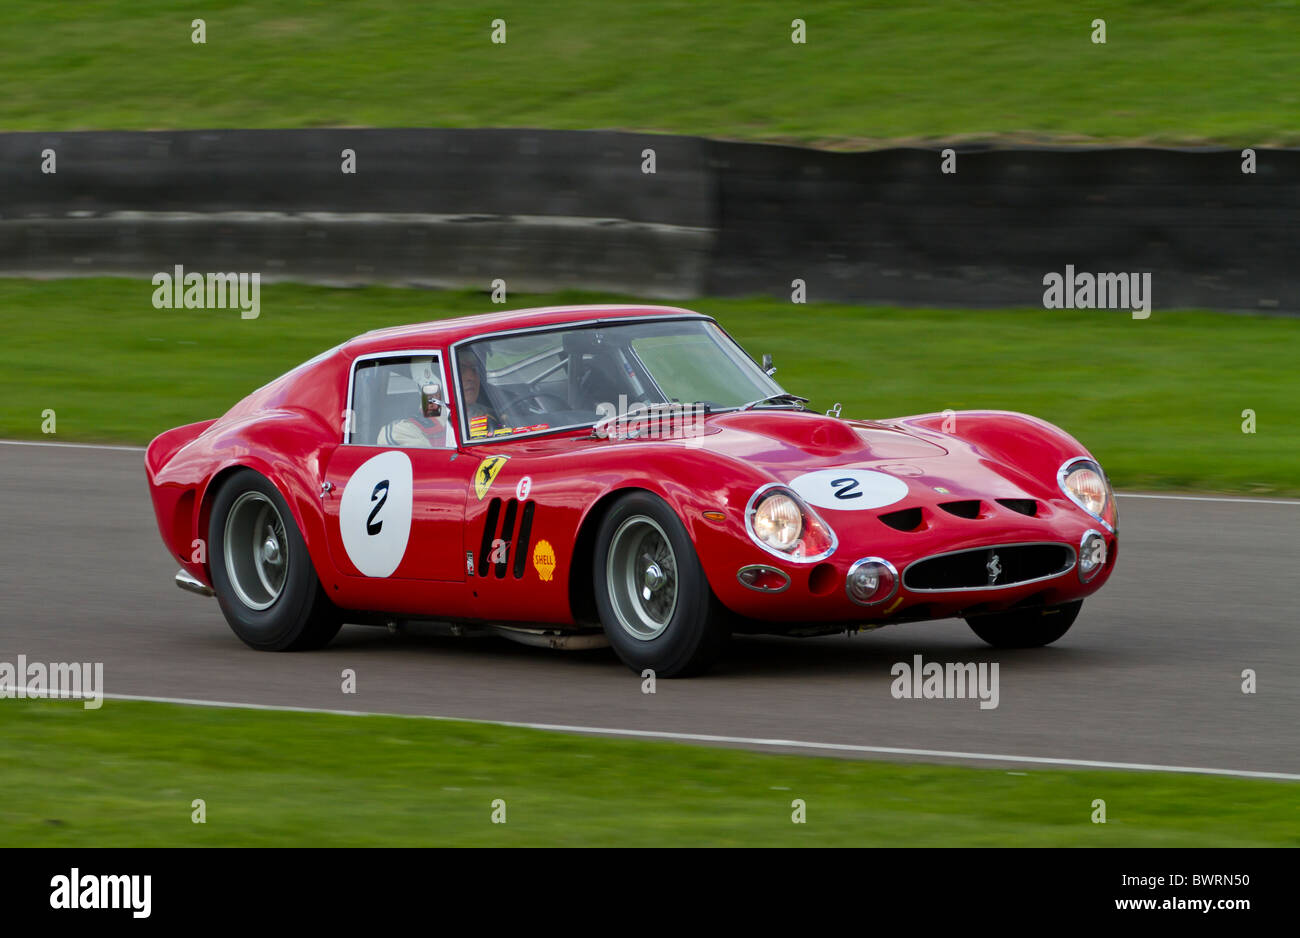 1963 Ferrari 330 GTO during the RAC TT Celebration race. 2010 Goodwood Revival meeting, Sussex, England, UK. - Stock Image